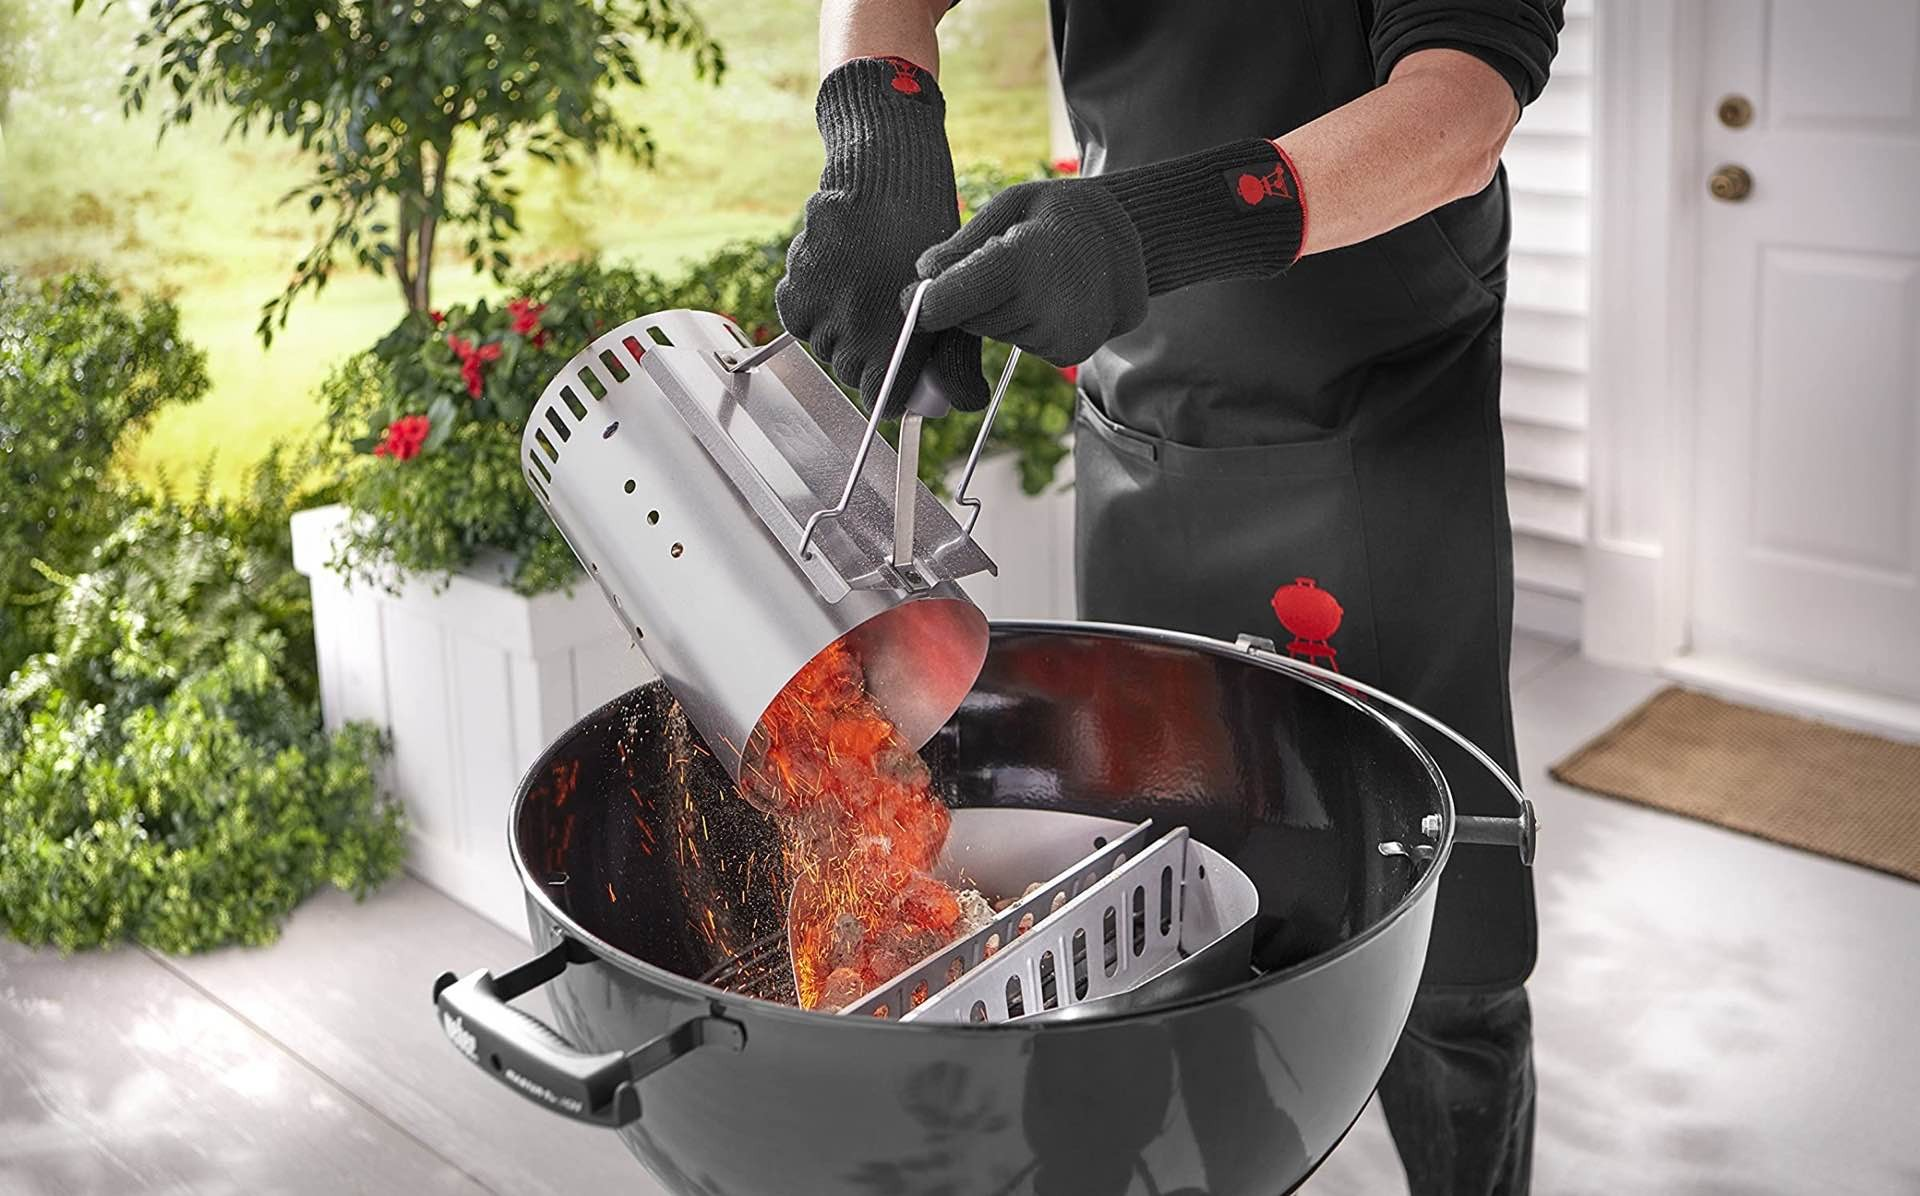 weber-7429-rapidfire-charcoal-chimney-starter-in-action